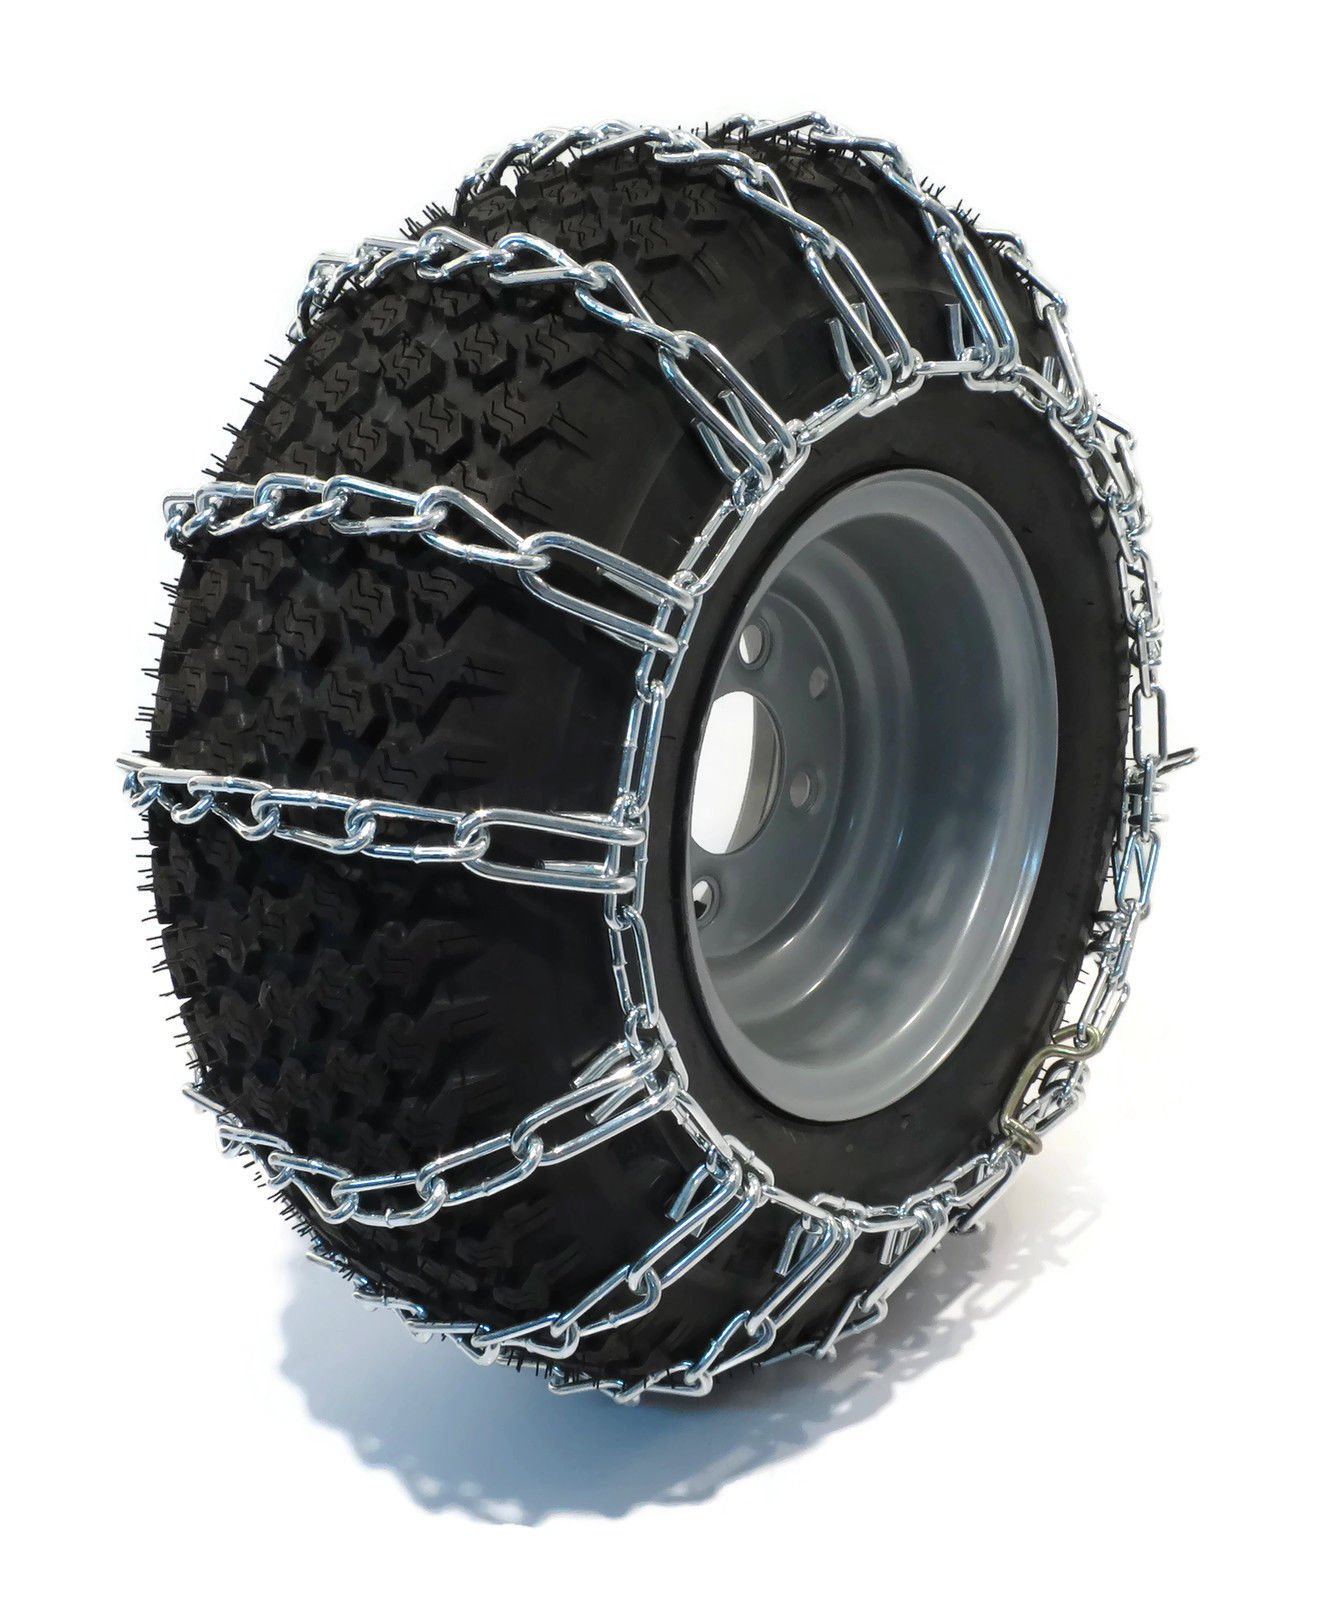 New PAIR 2 Link TIRE CHAINS 23x10.5x12 fits many Honda MUV Pioneer UTV Vehicle by The ROP Shop by The ROP Shop (Image #3)